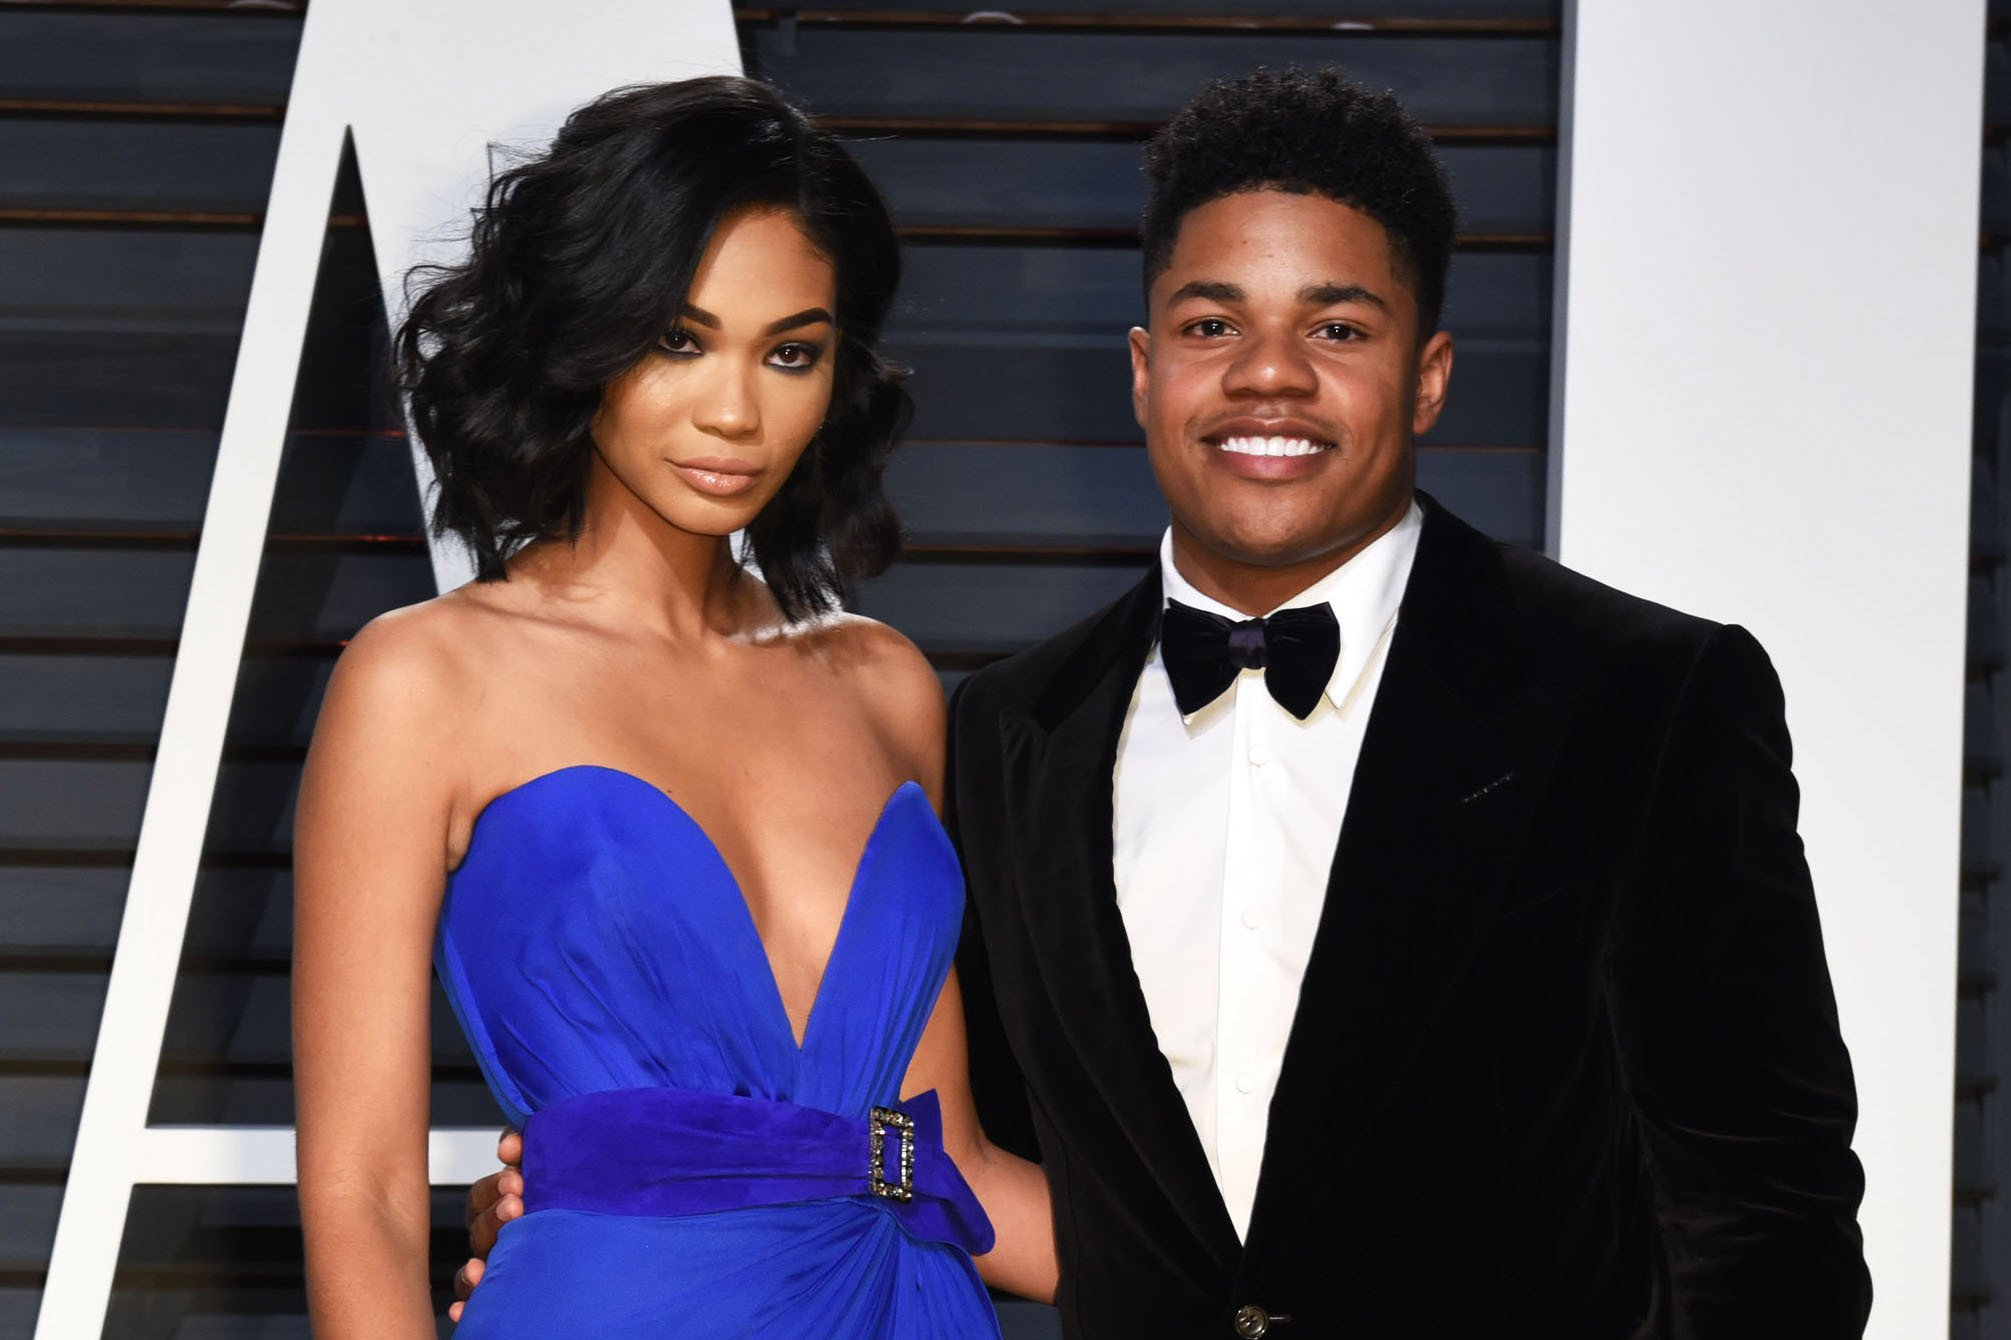 Chanel Iman and Sterling Shepard tie the knot